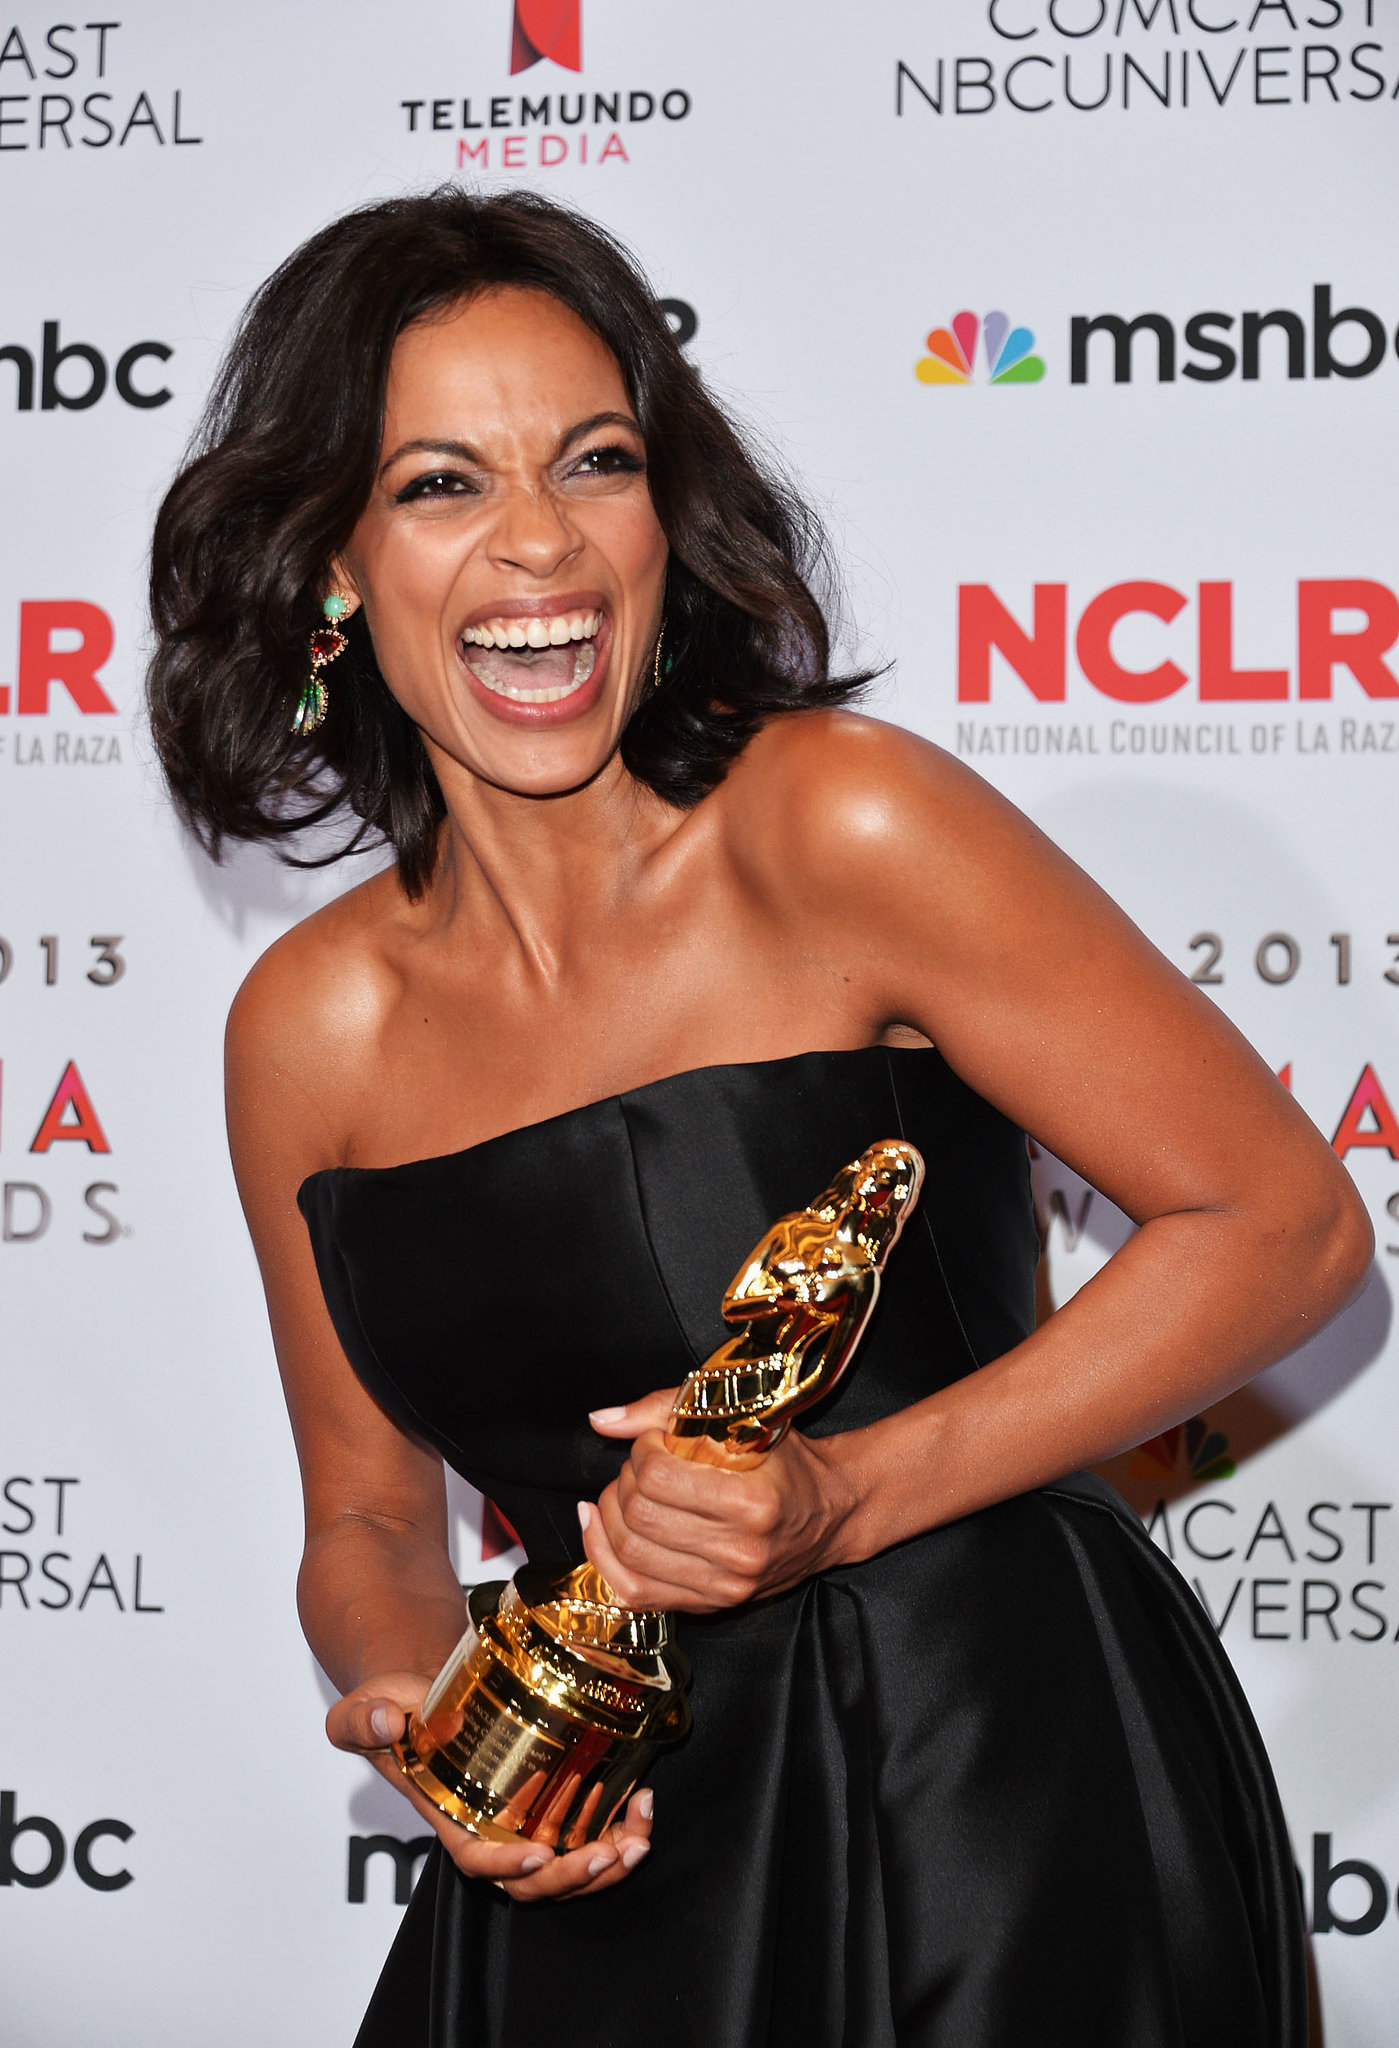 Rosario Dawson was honored at the 2013 ALMA Awards.